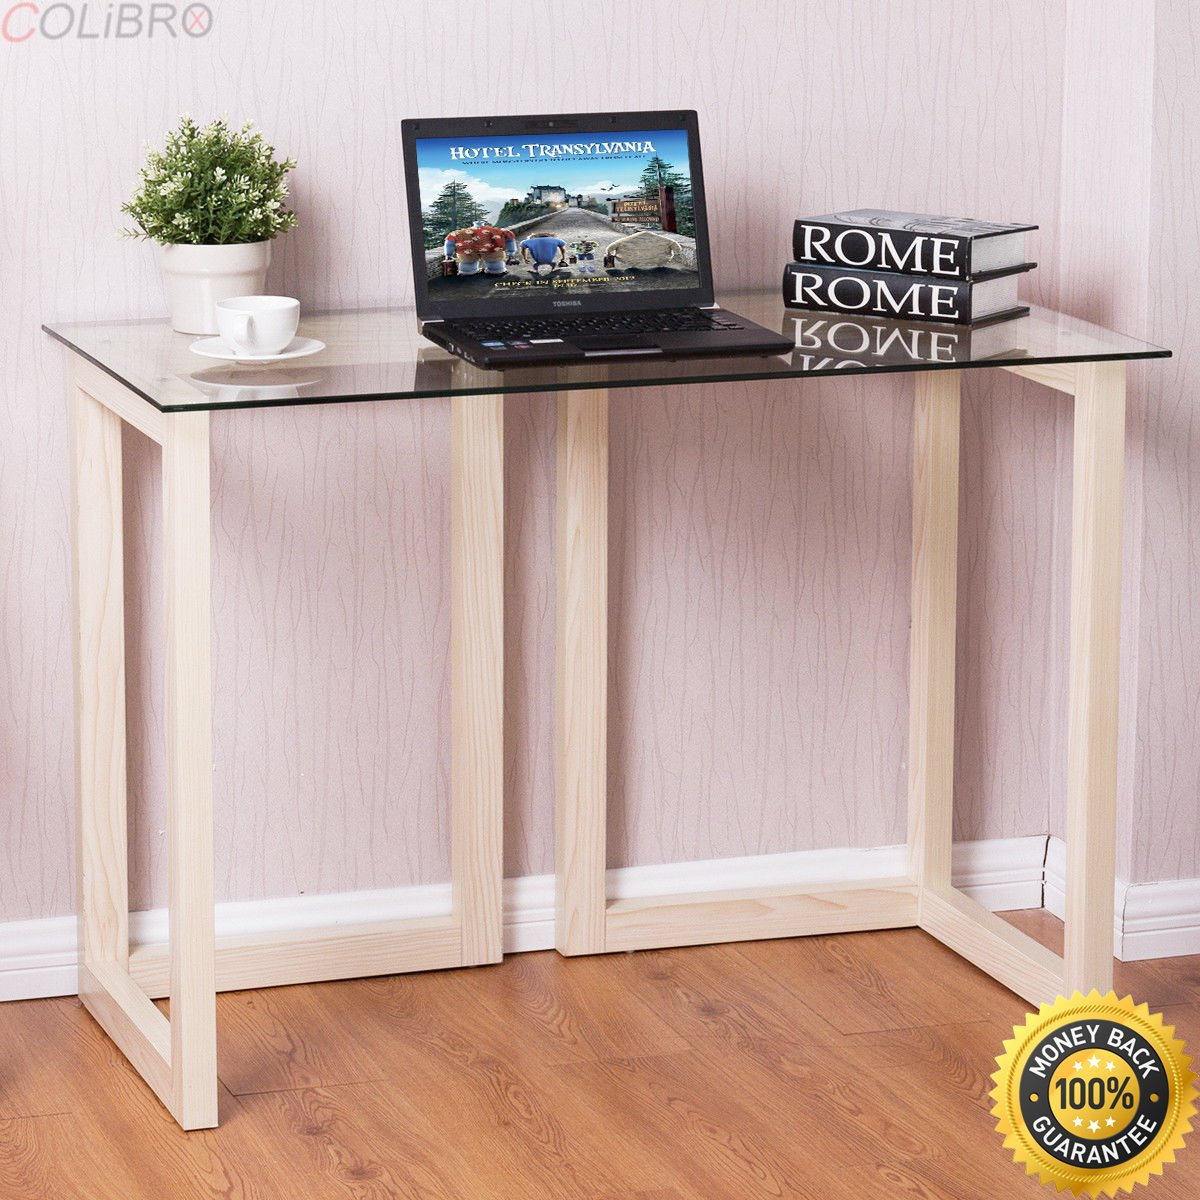 Colibrox 44 tempered glass top console desk sofa accent table wood entryway furniture accent tables cheap solid wood sofa table accent living room